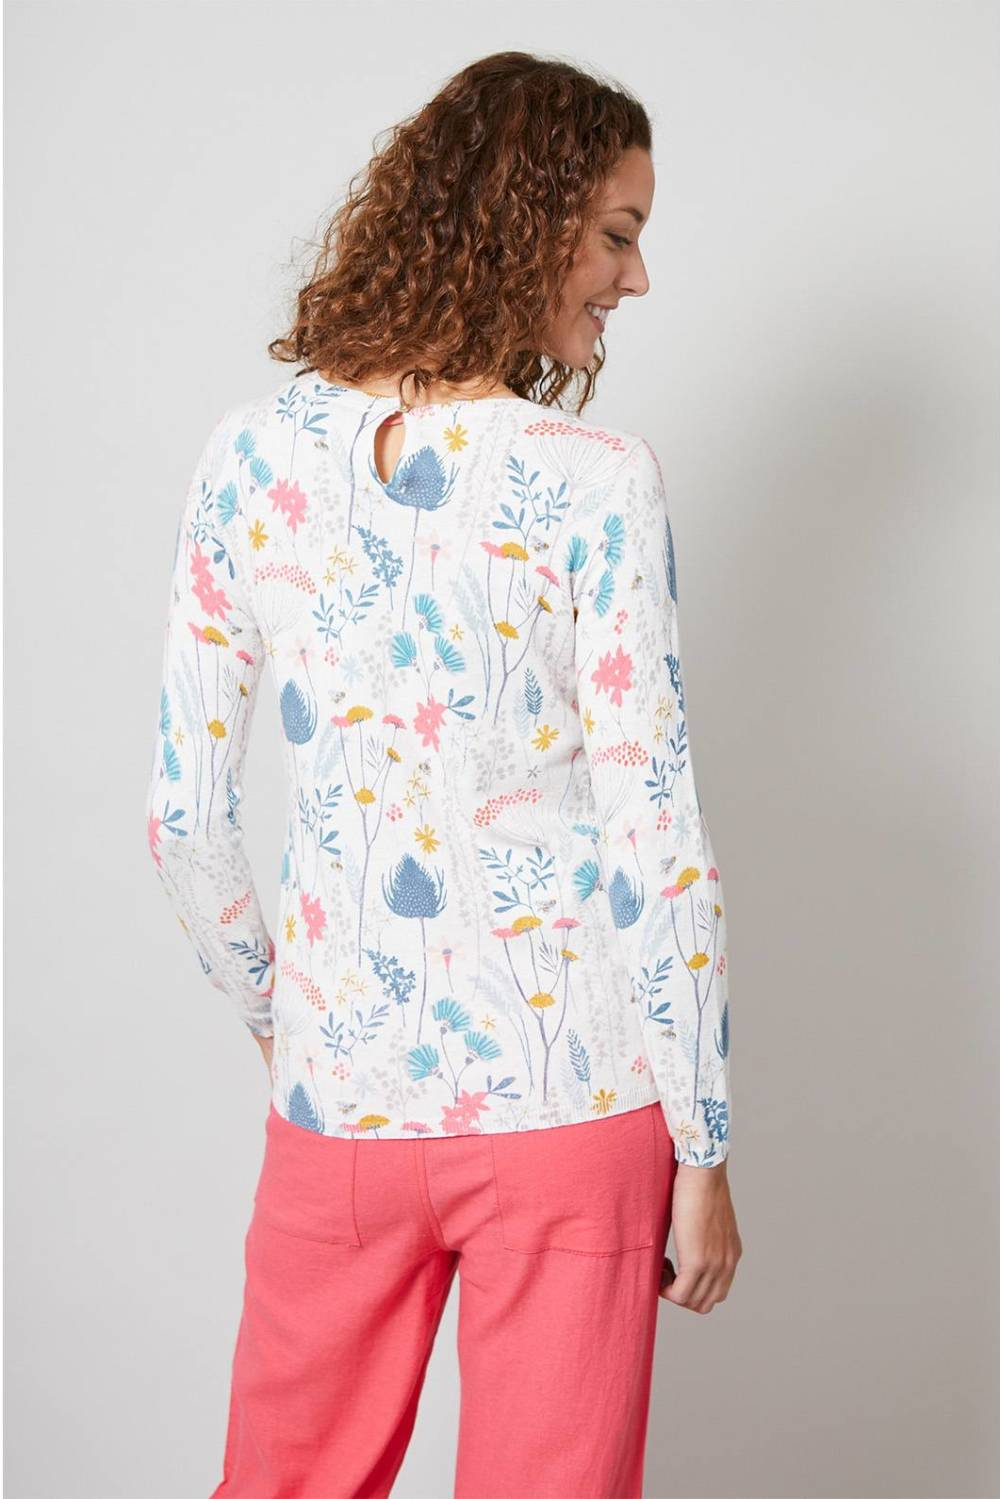 Oaksey Jumper Floral Meadow Lily and Me Katie Kerr Women's Clothing